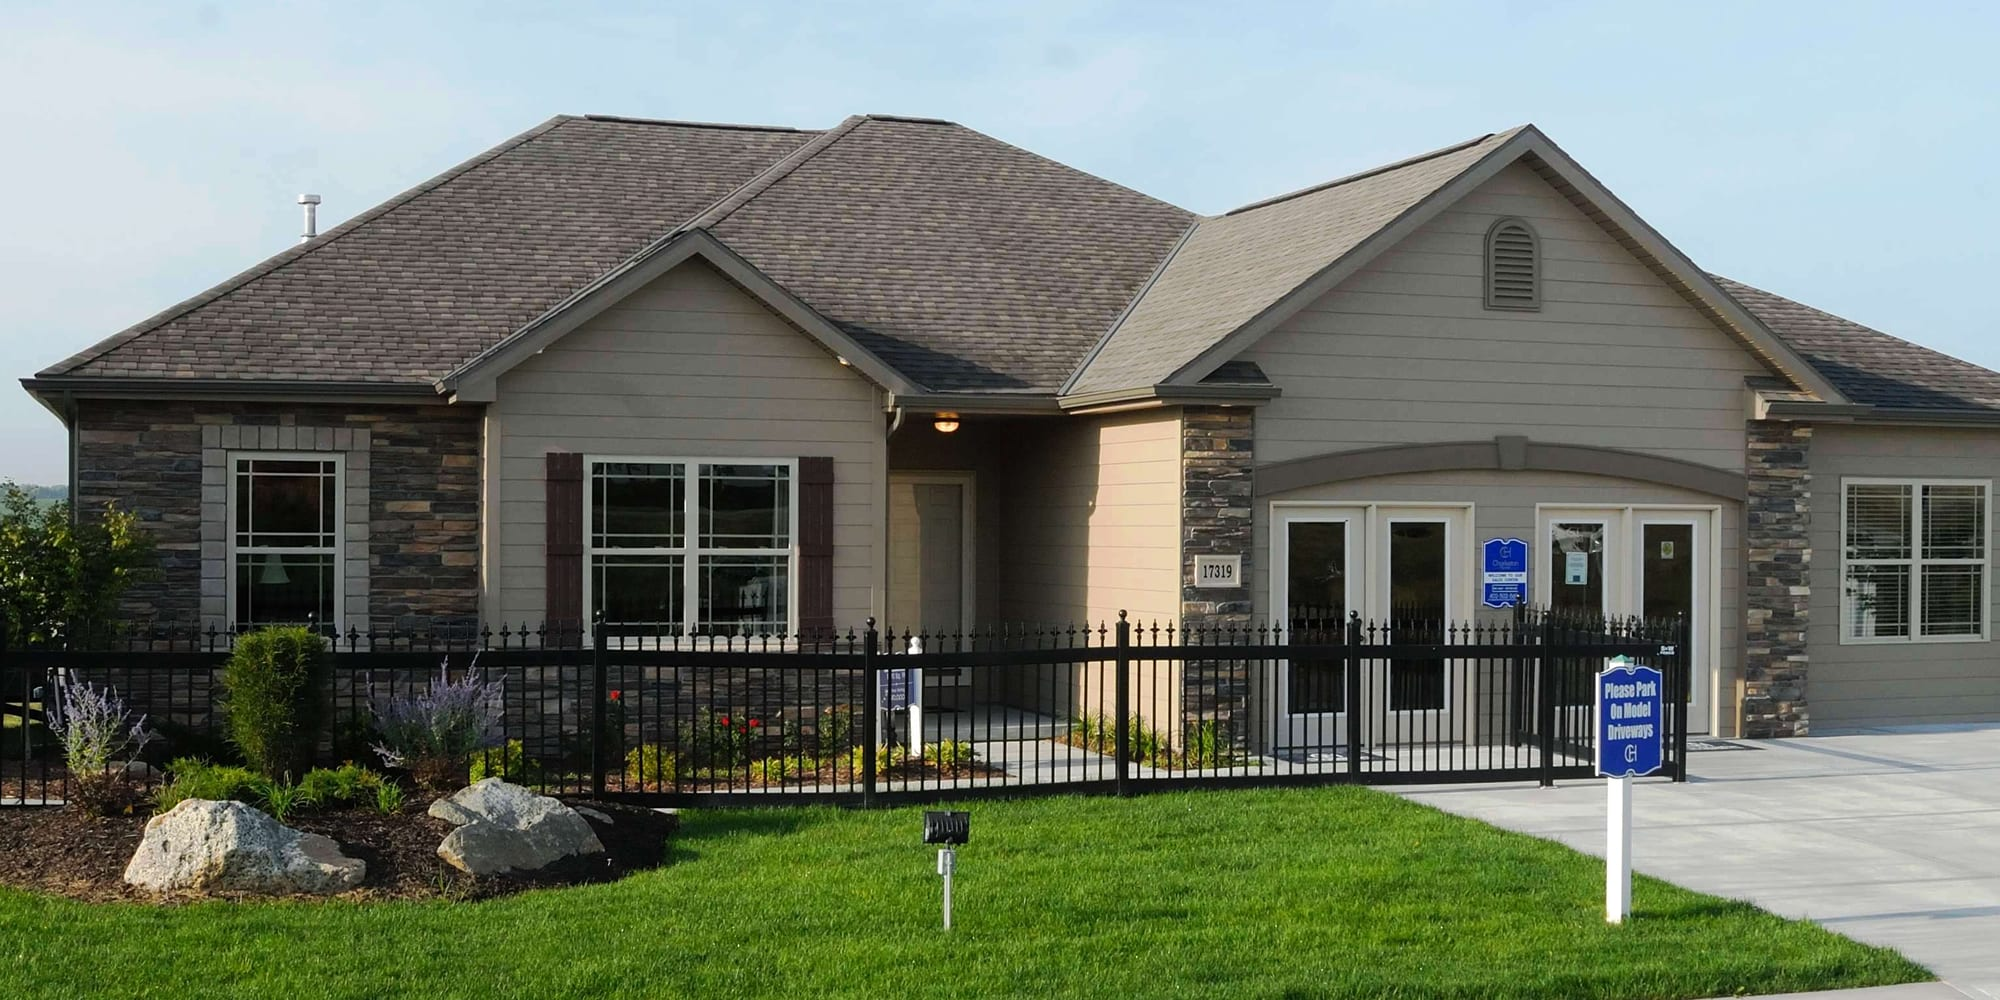 Ranch model homes omaha